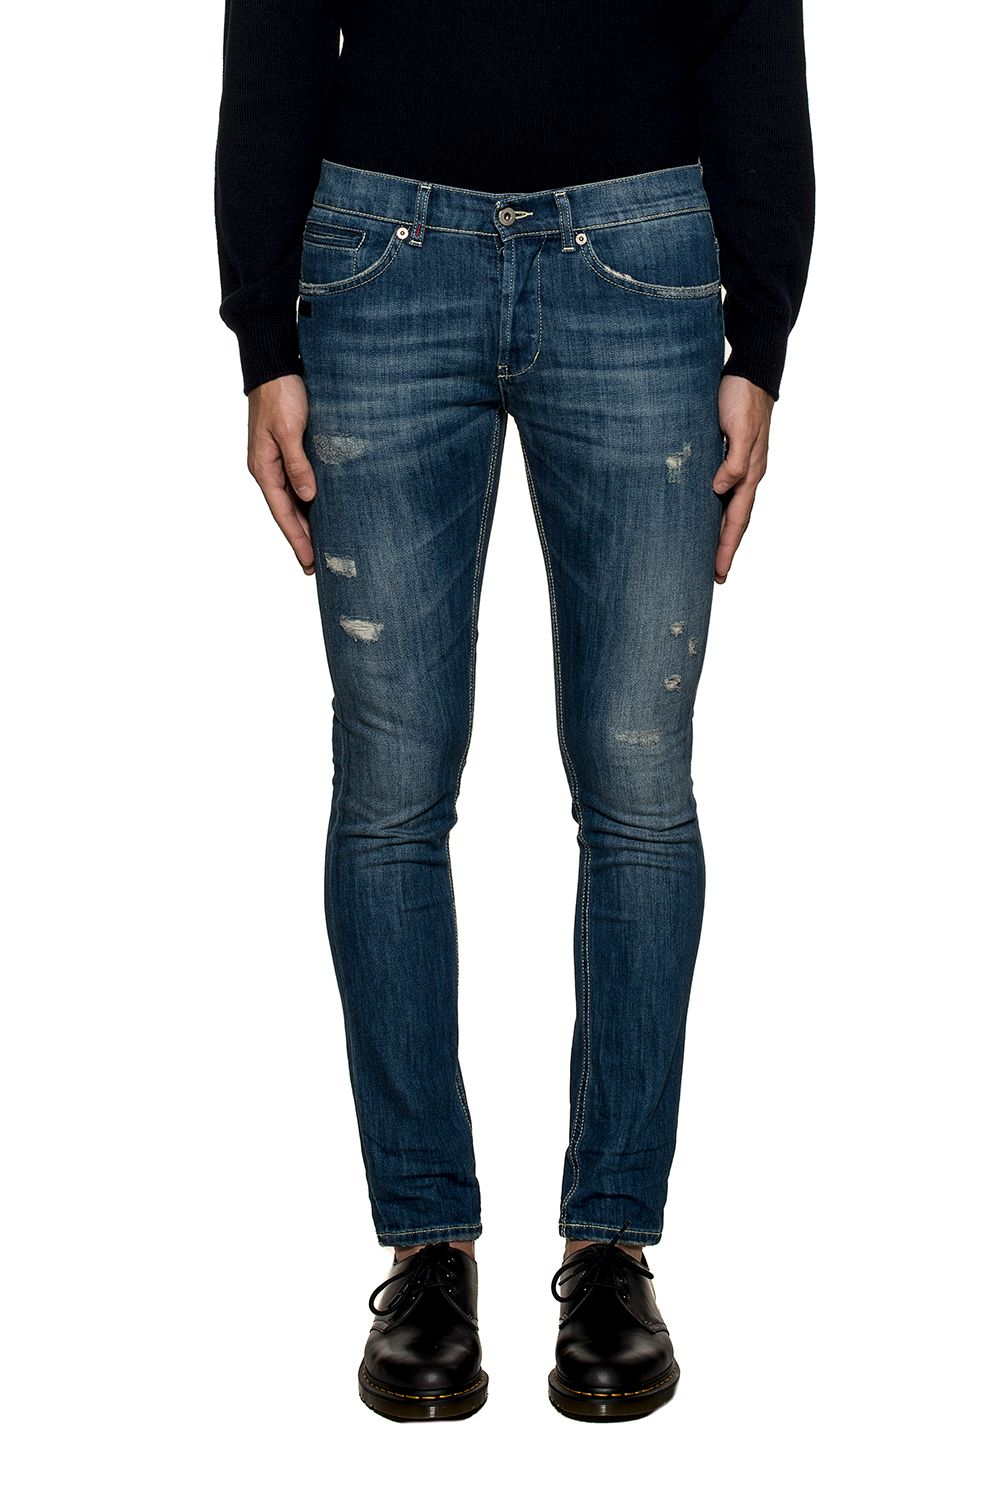 Blue George Denim Jeans 9799606